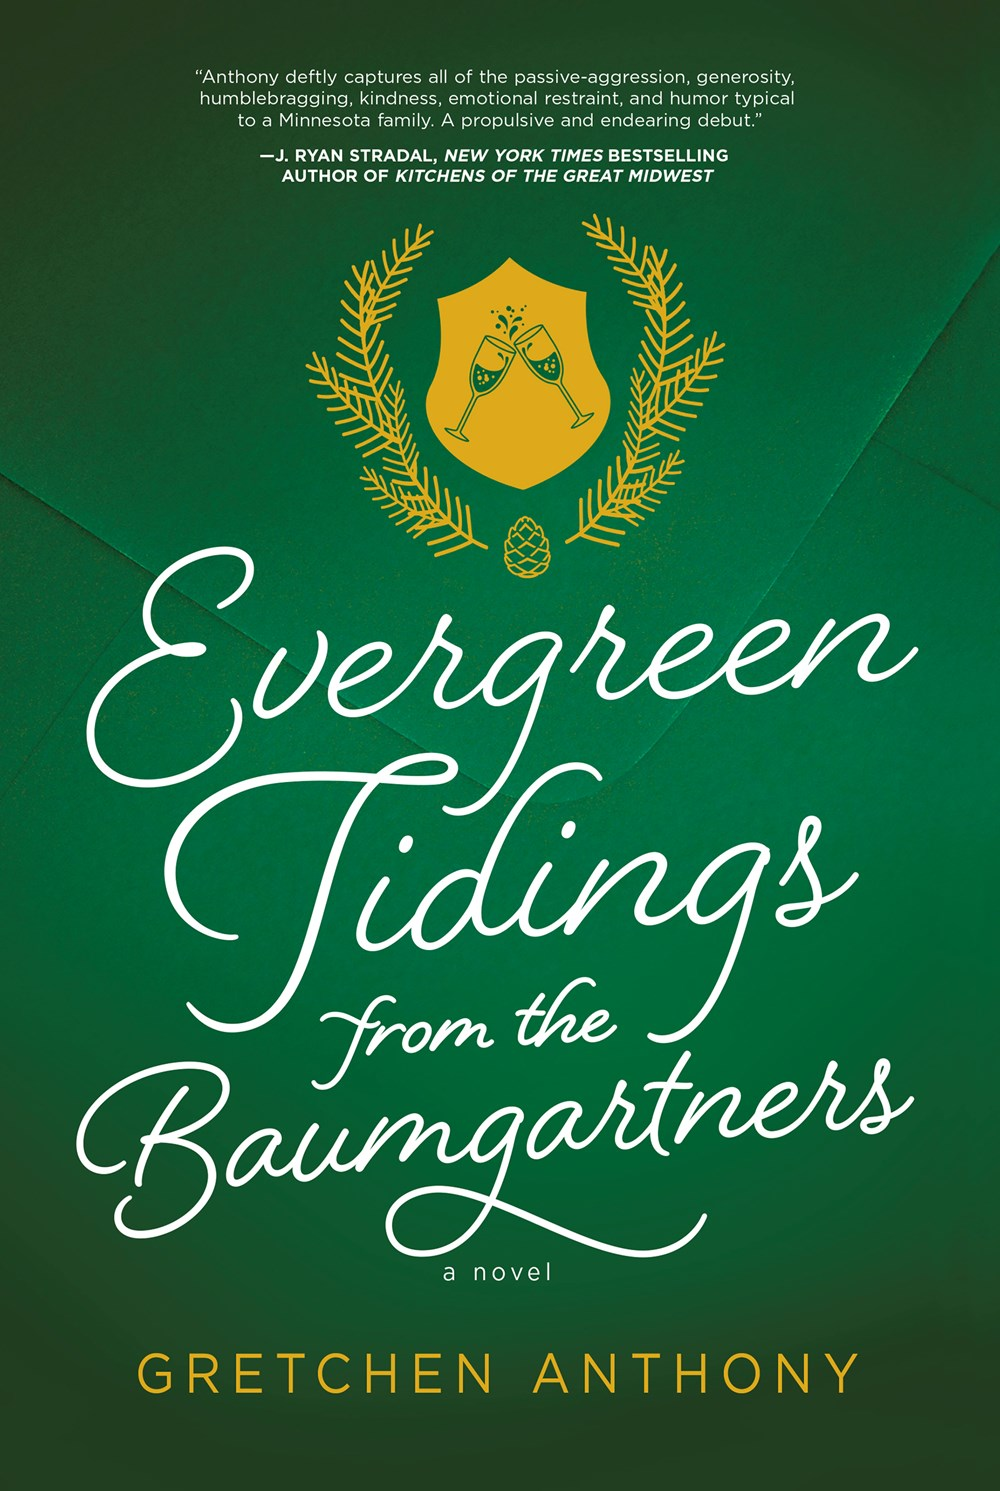 Evergreen Tidings from the Baumgartners cover